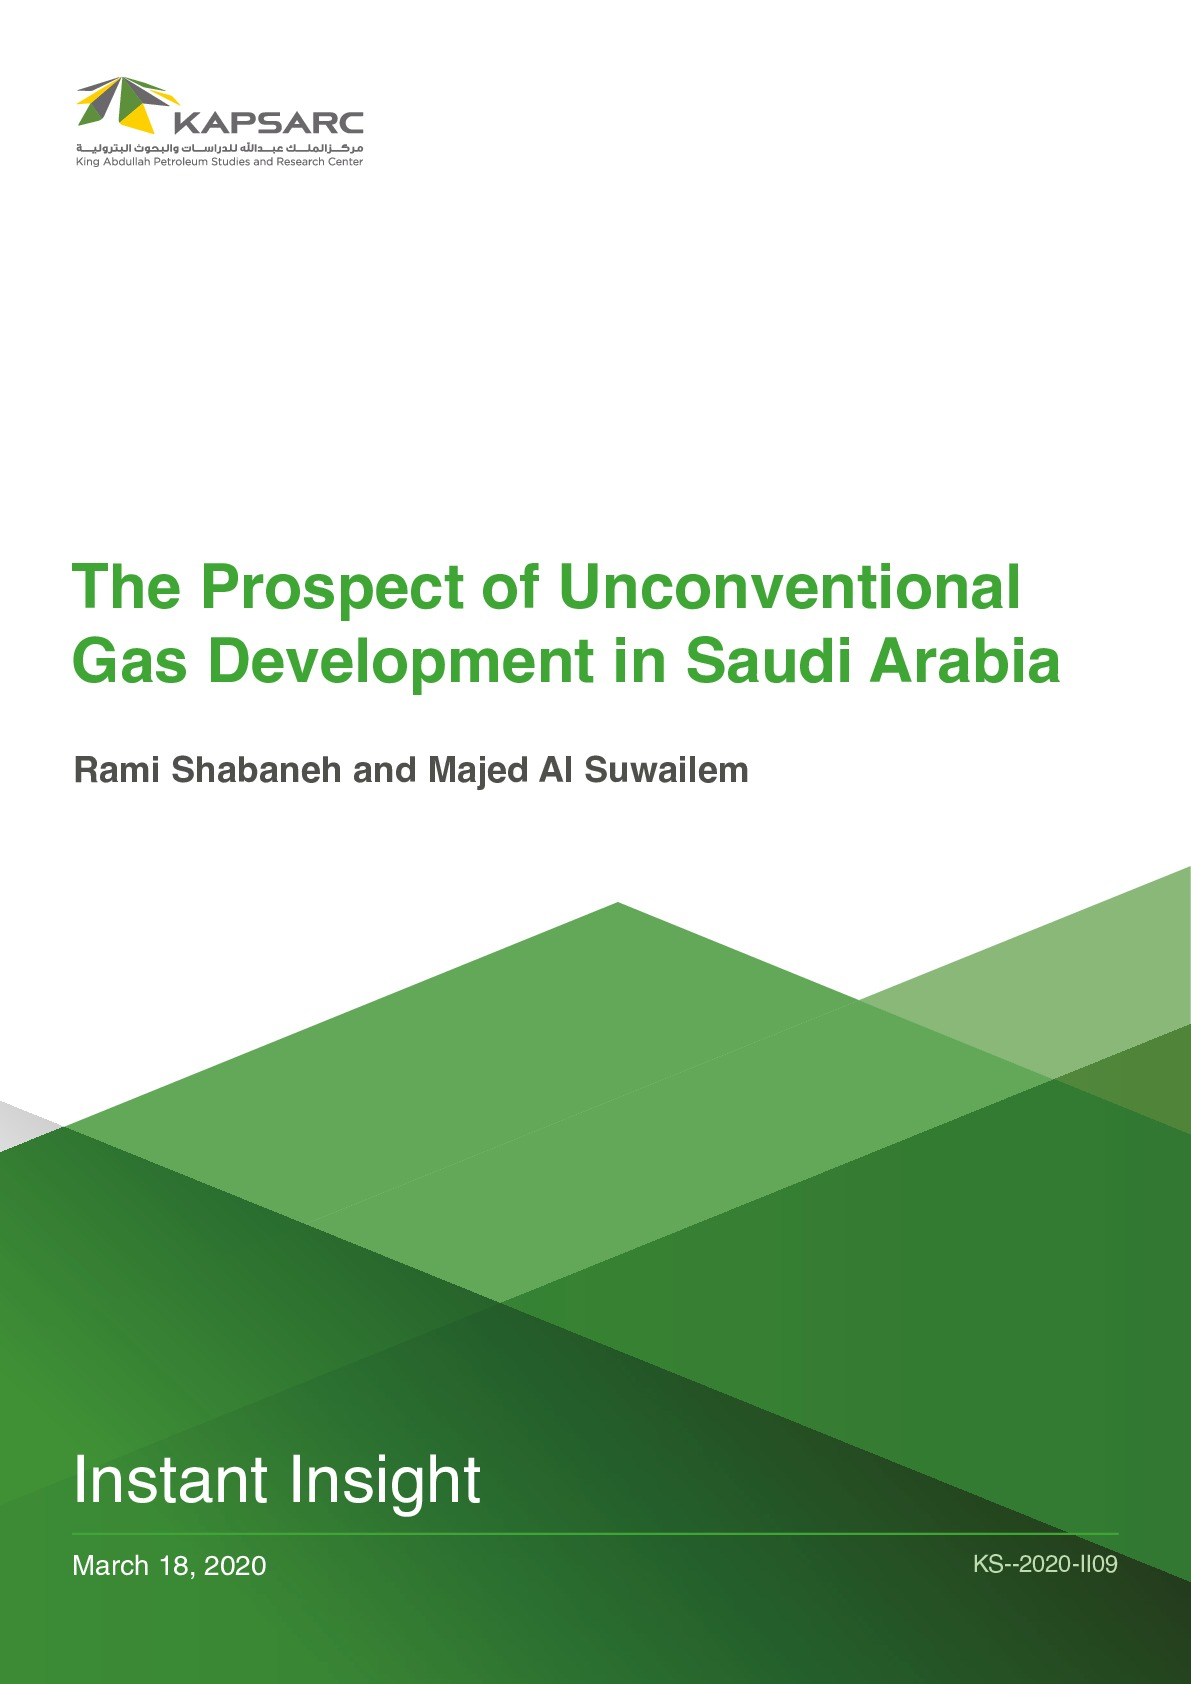 The Prospect of Unconventional Gas Development in Saudi Arabia